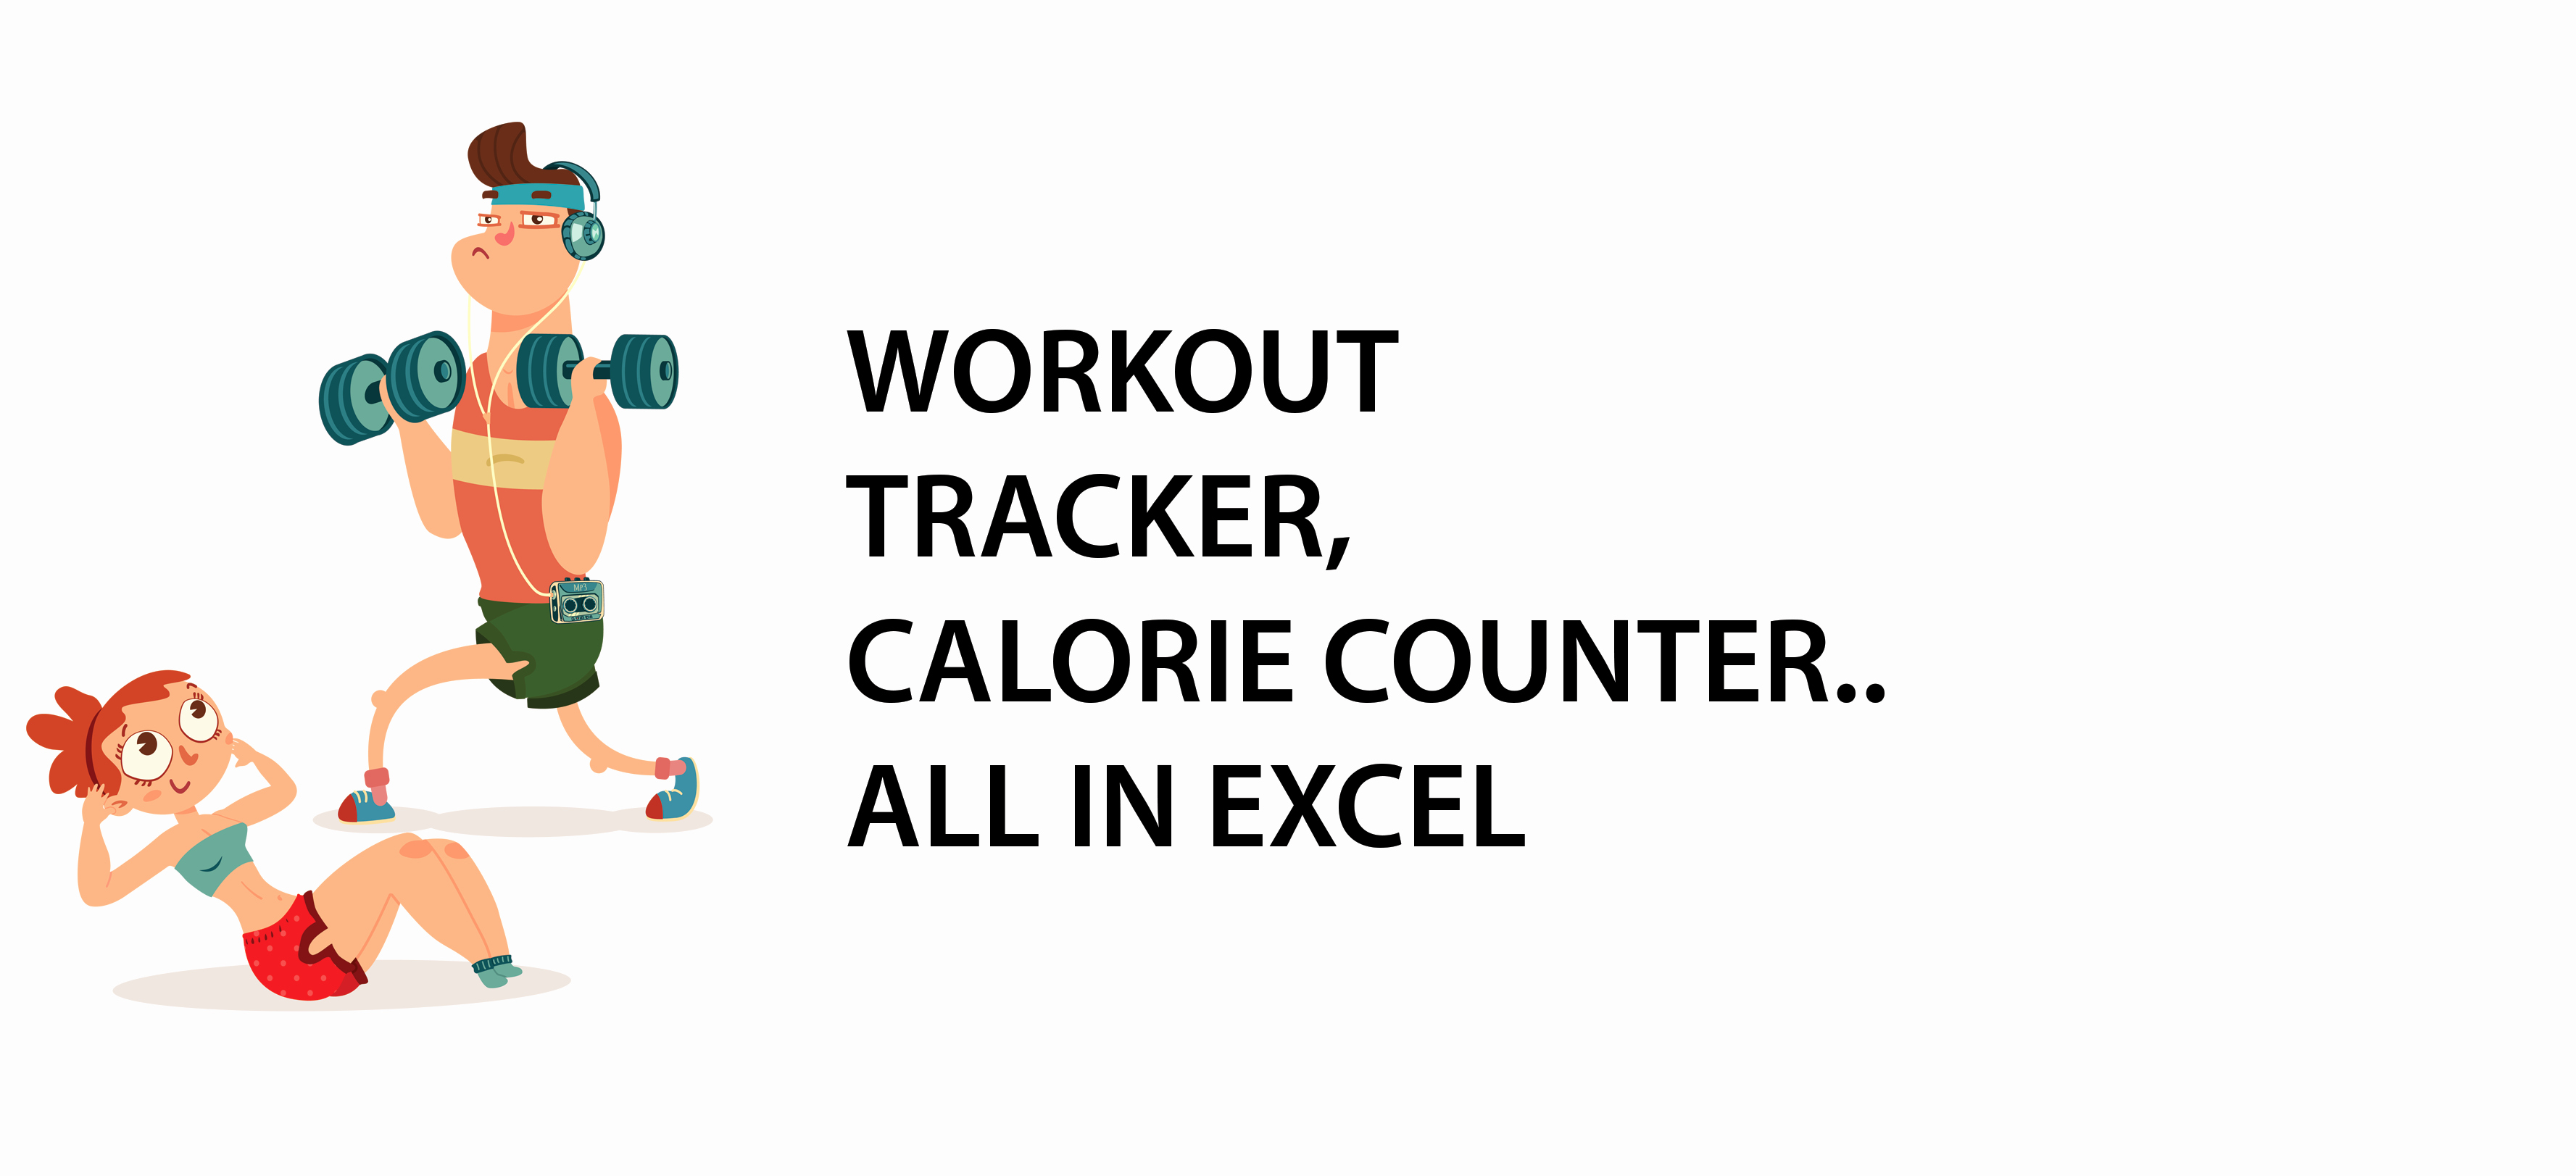 Calorie Counter Spreadsheet Awesome Workout Tracker Calorie Counter…all In Excel Excel with